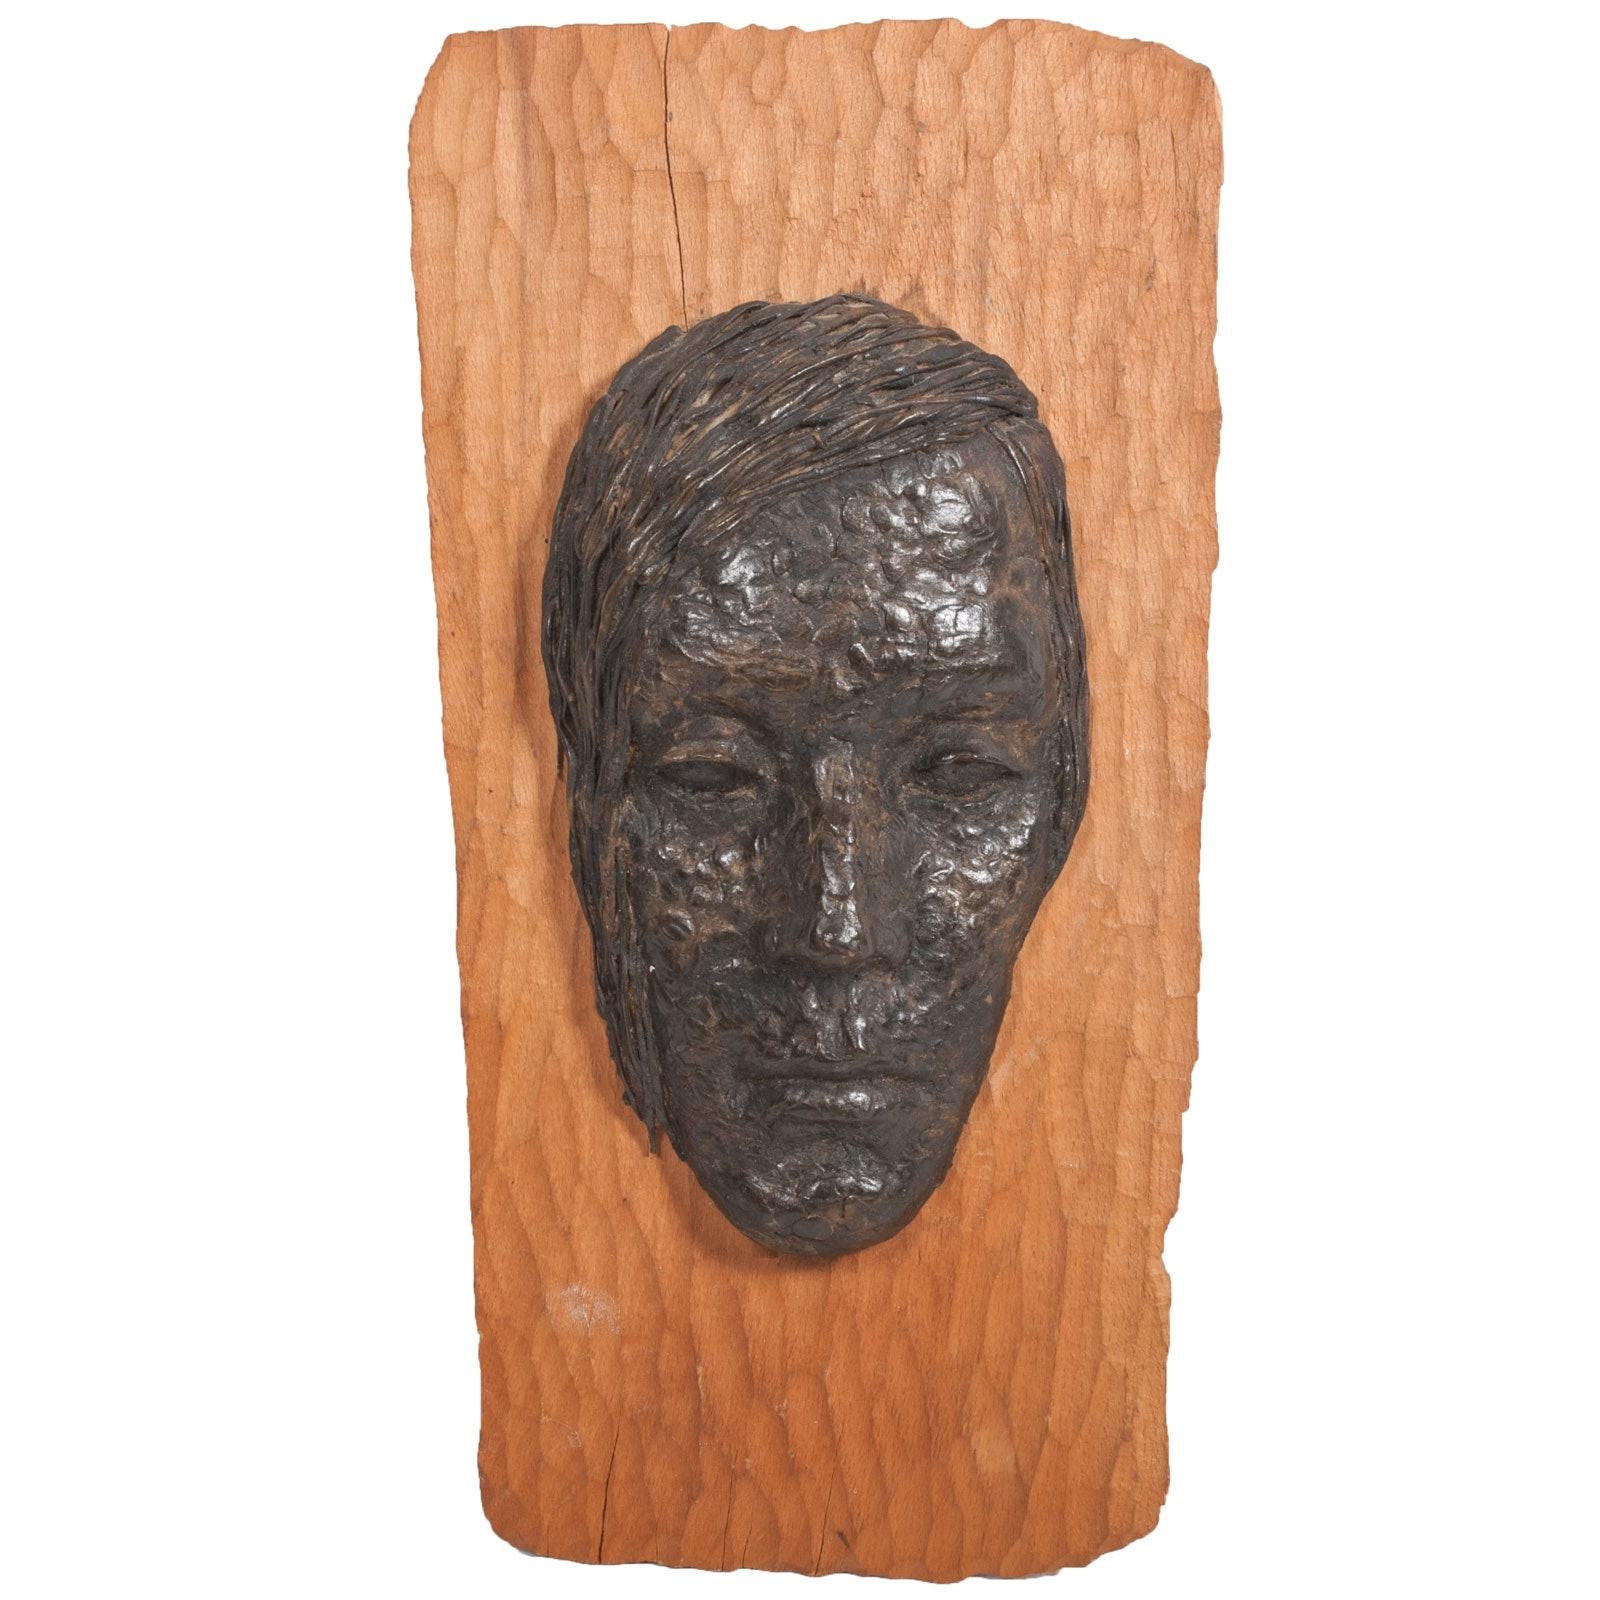 Virginia K. Hess Ceramic on Wood Wall Sculpture of a Face